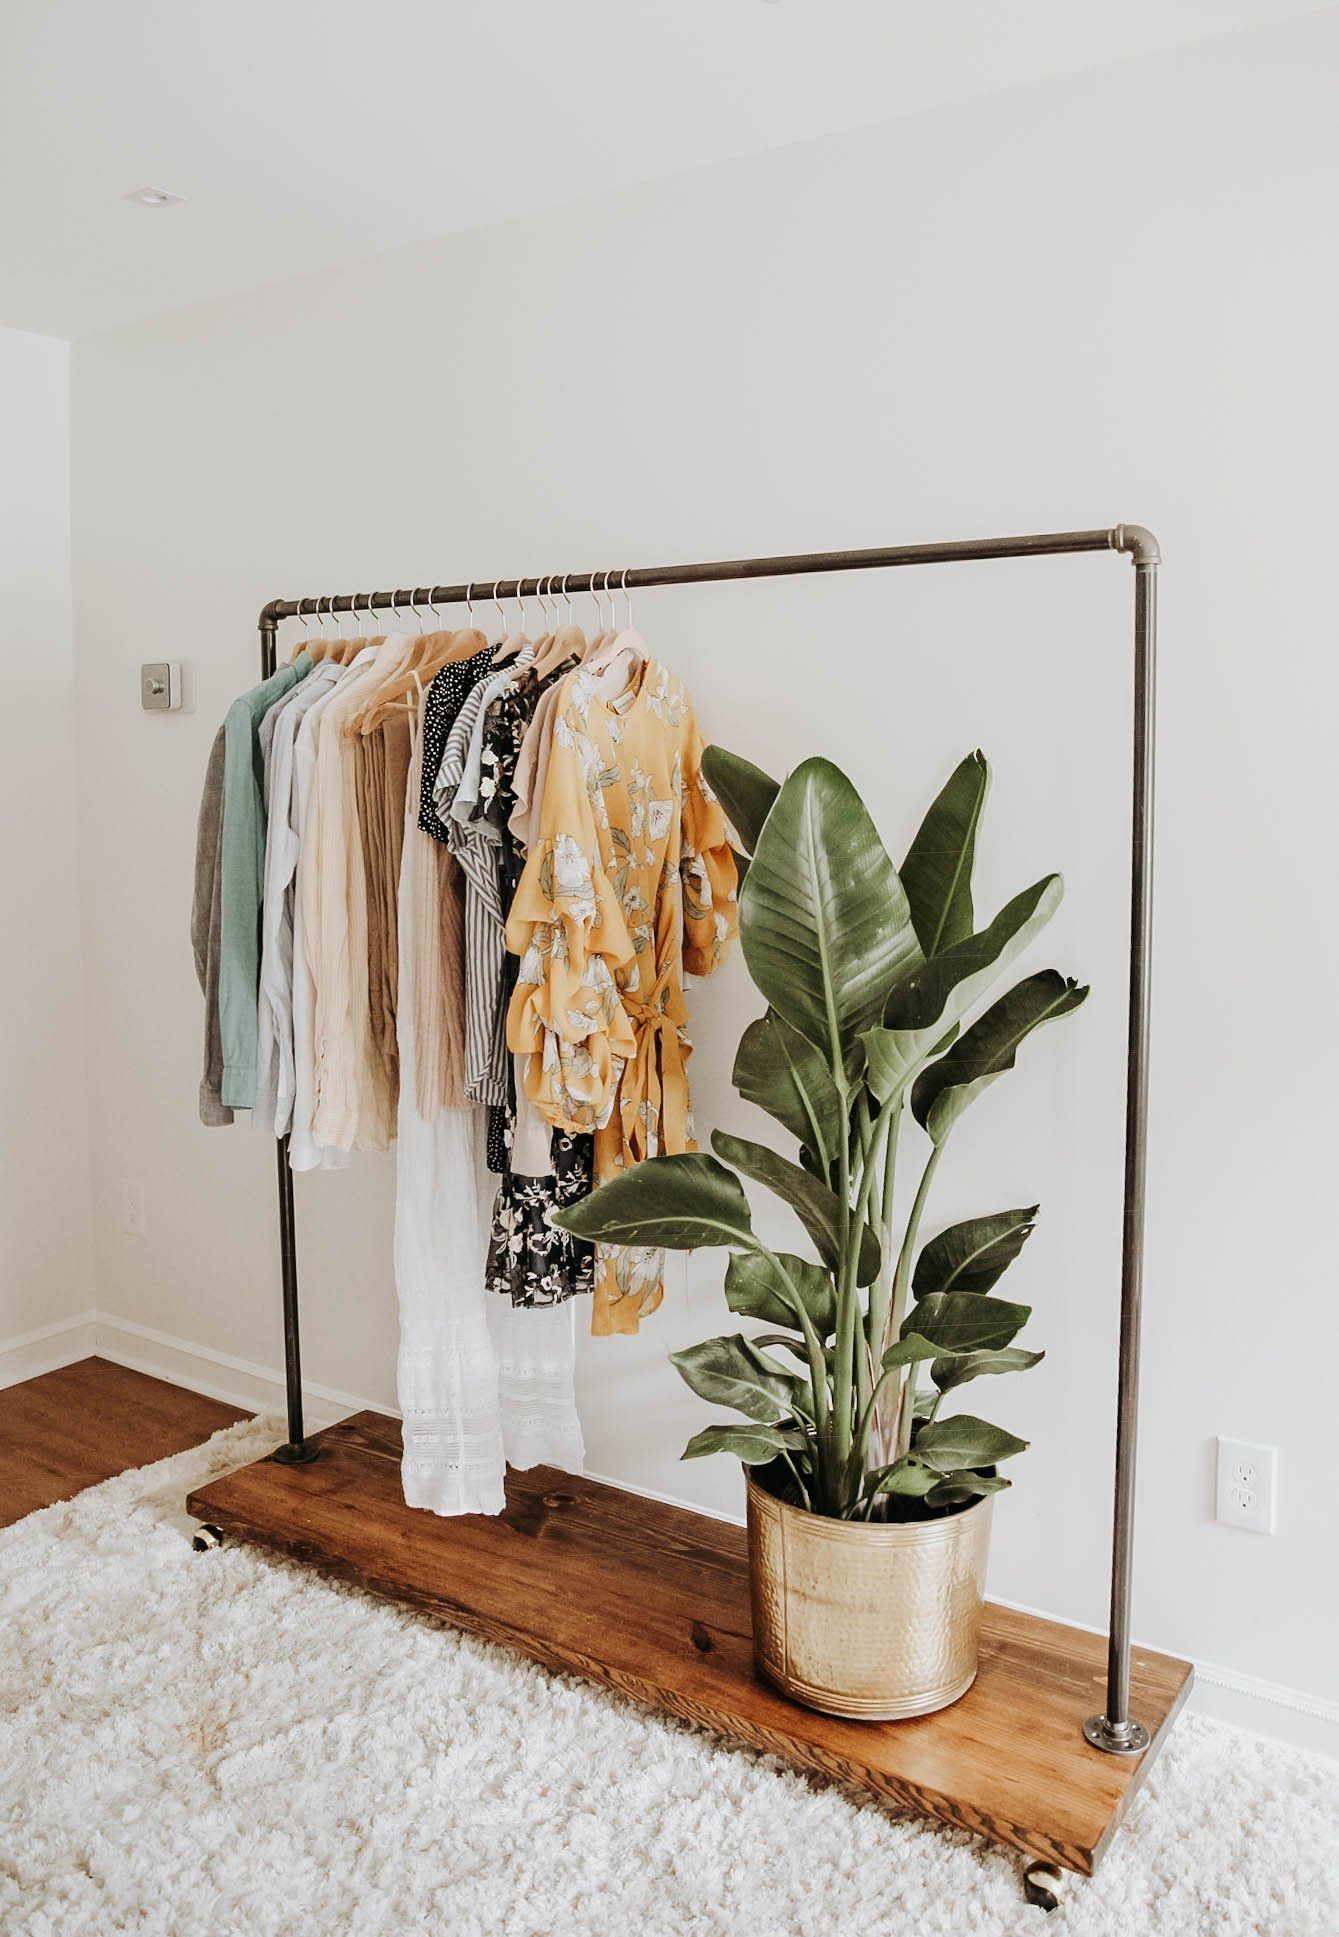 Clothes Drying Rack Hanging Ikea